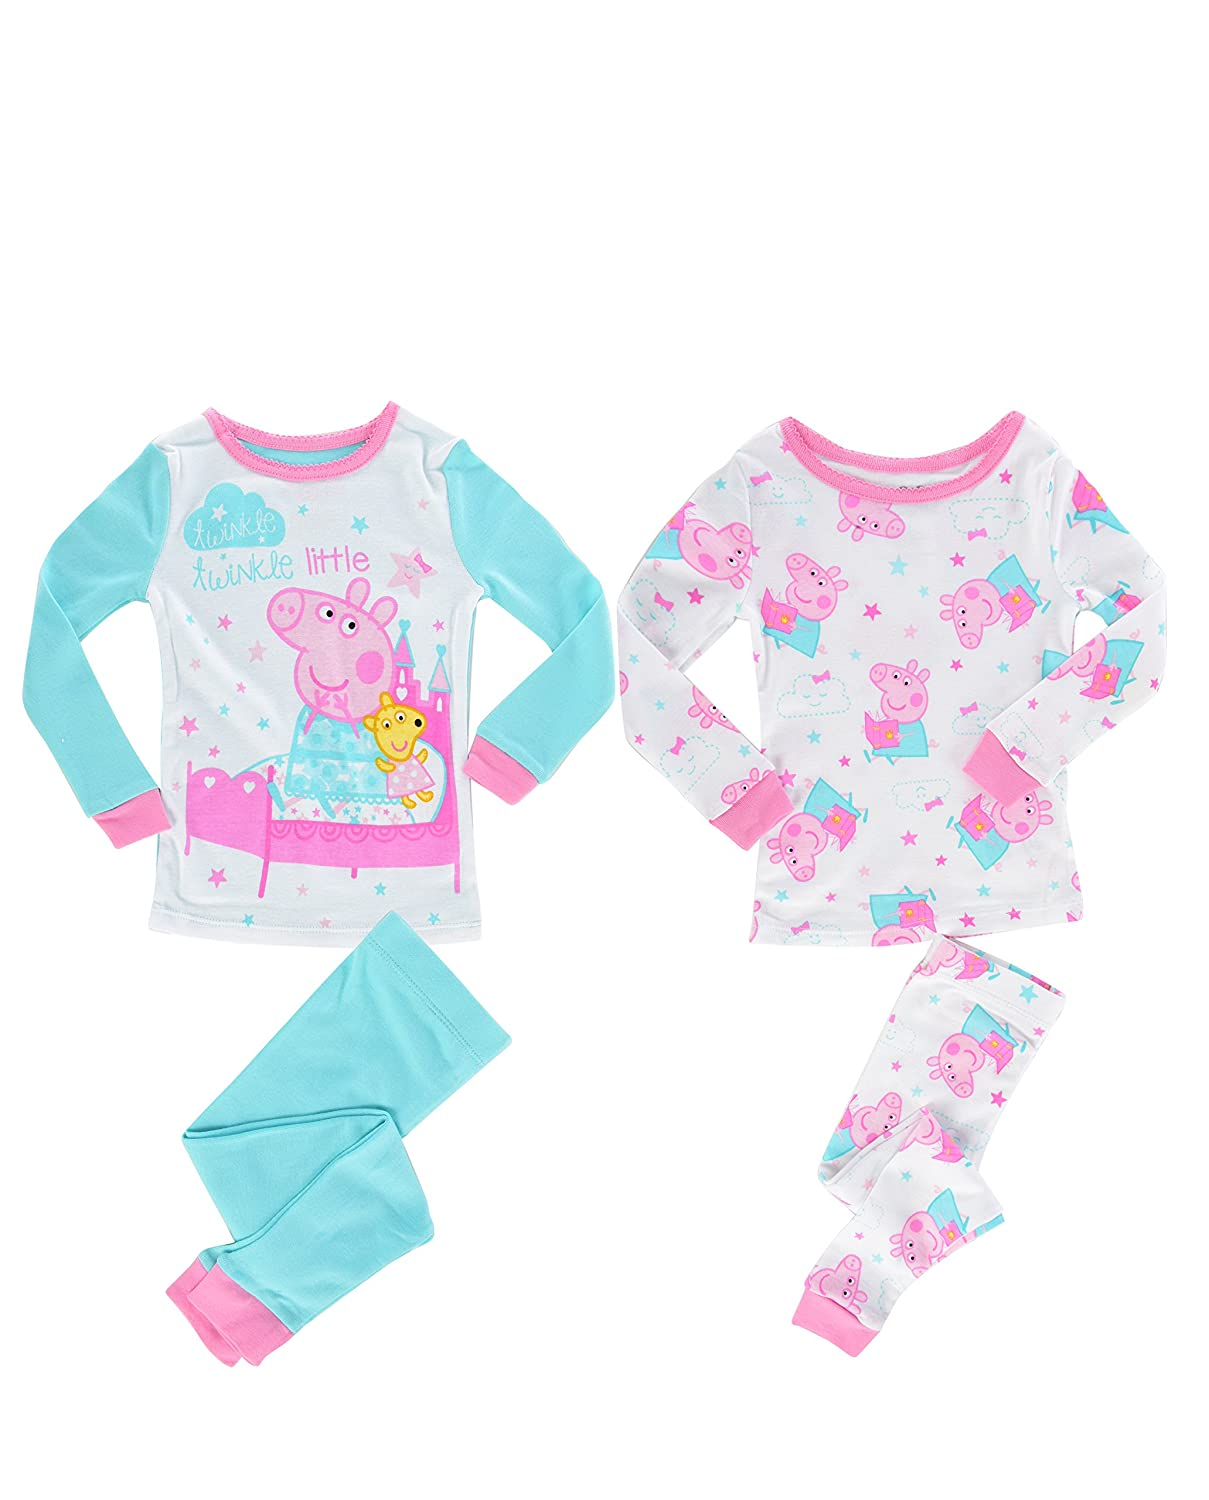 Peppa Pig Girls Toddler Girls Twinkle Twinkle Little Star 4 Piece Cotton Set Multi 2T K183184PP